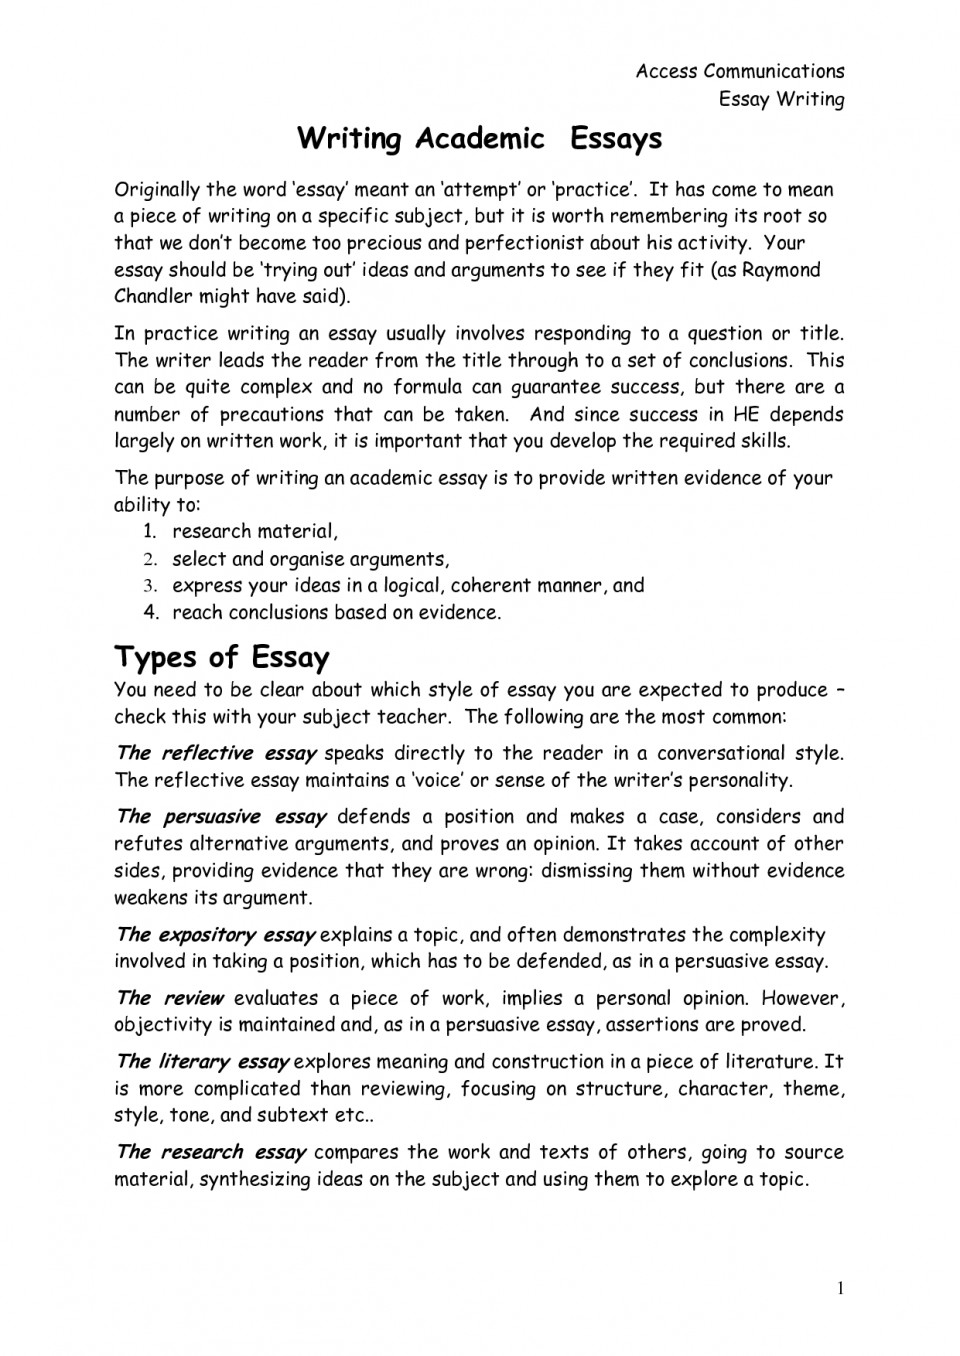 016 Reflective Essay On Academic Writings Beautiful Examples About Life Pdf Apa 960